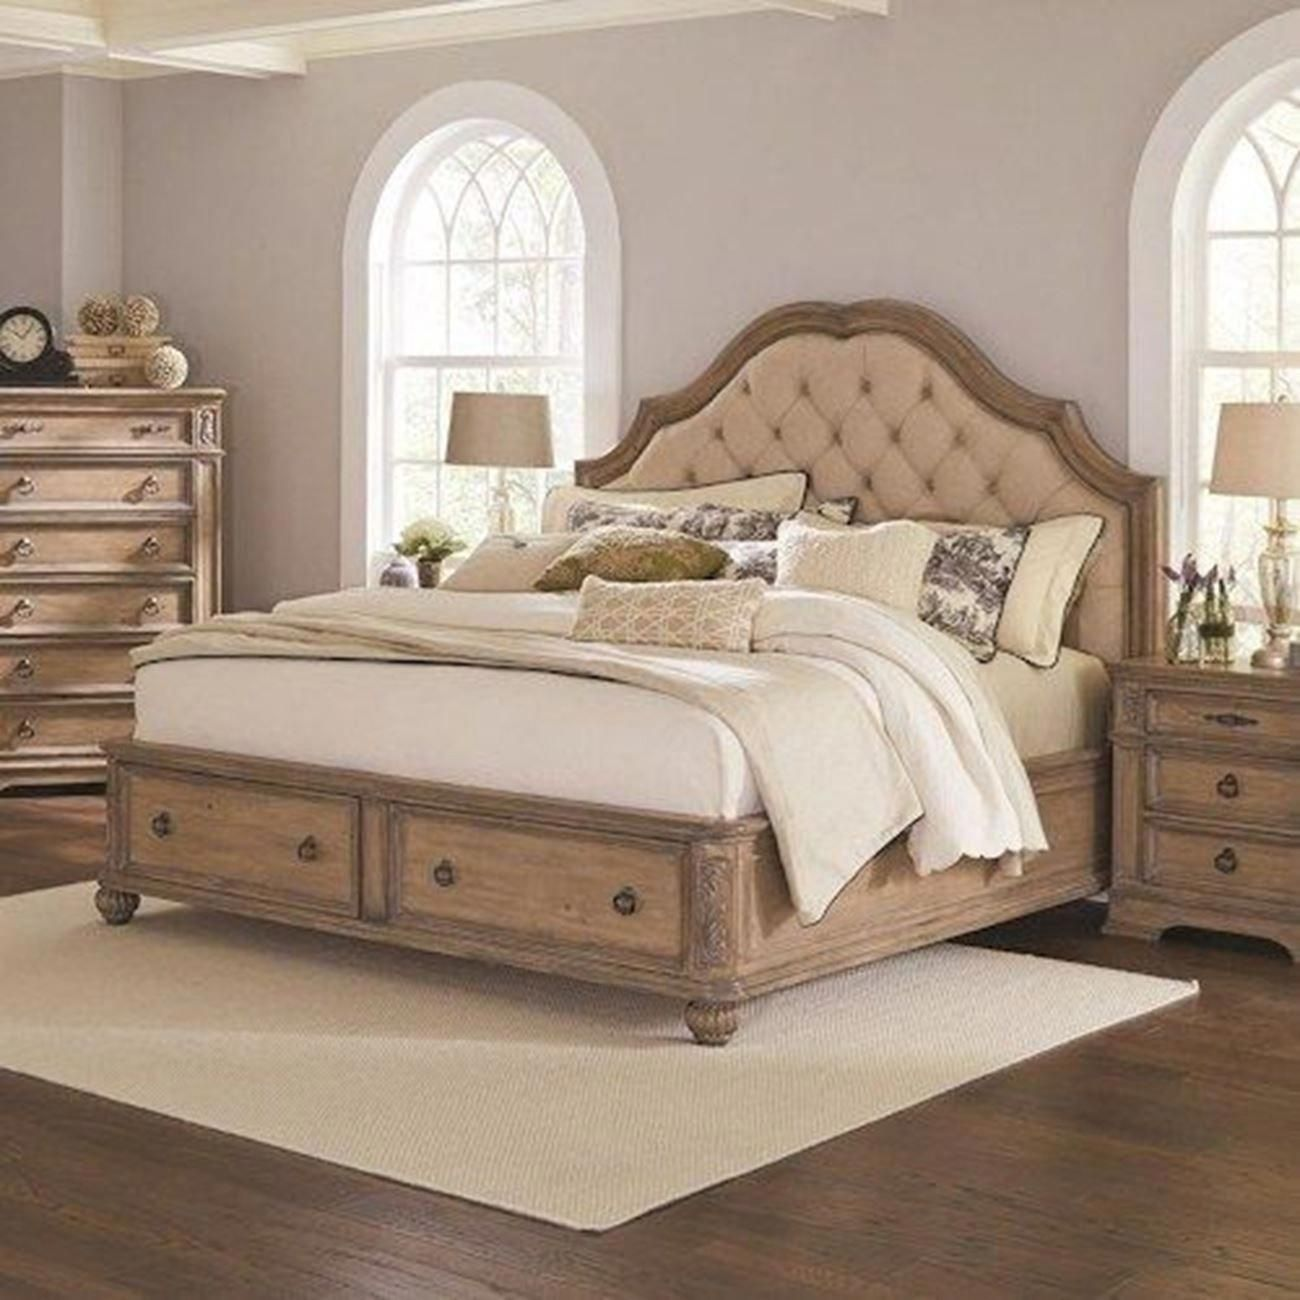 Shipping Furniture From India To Usa